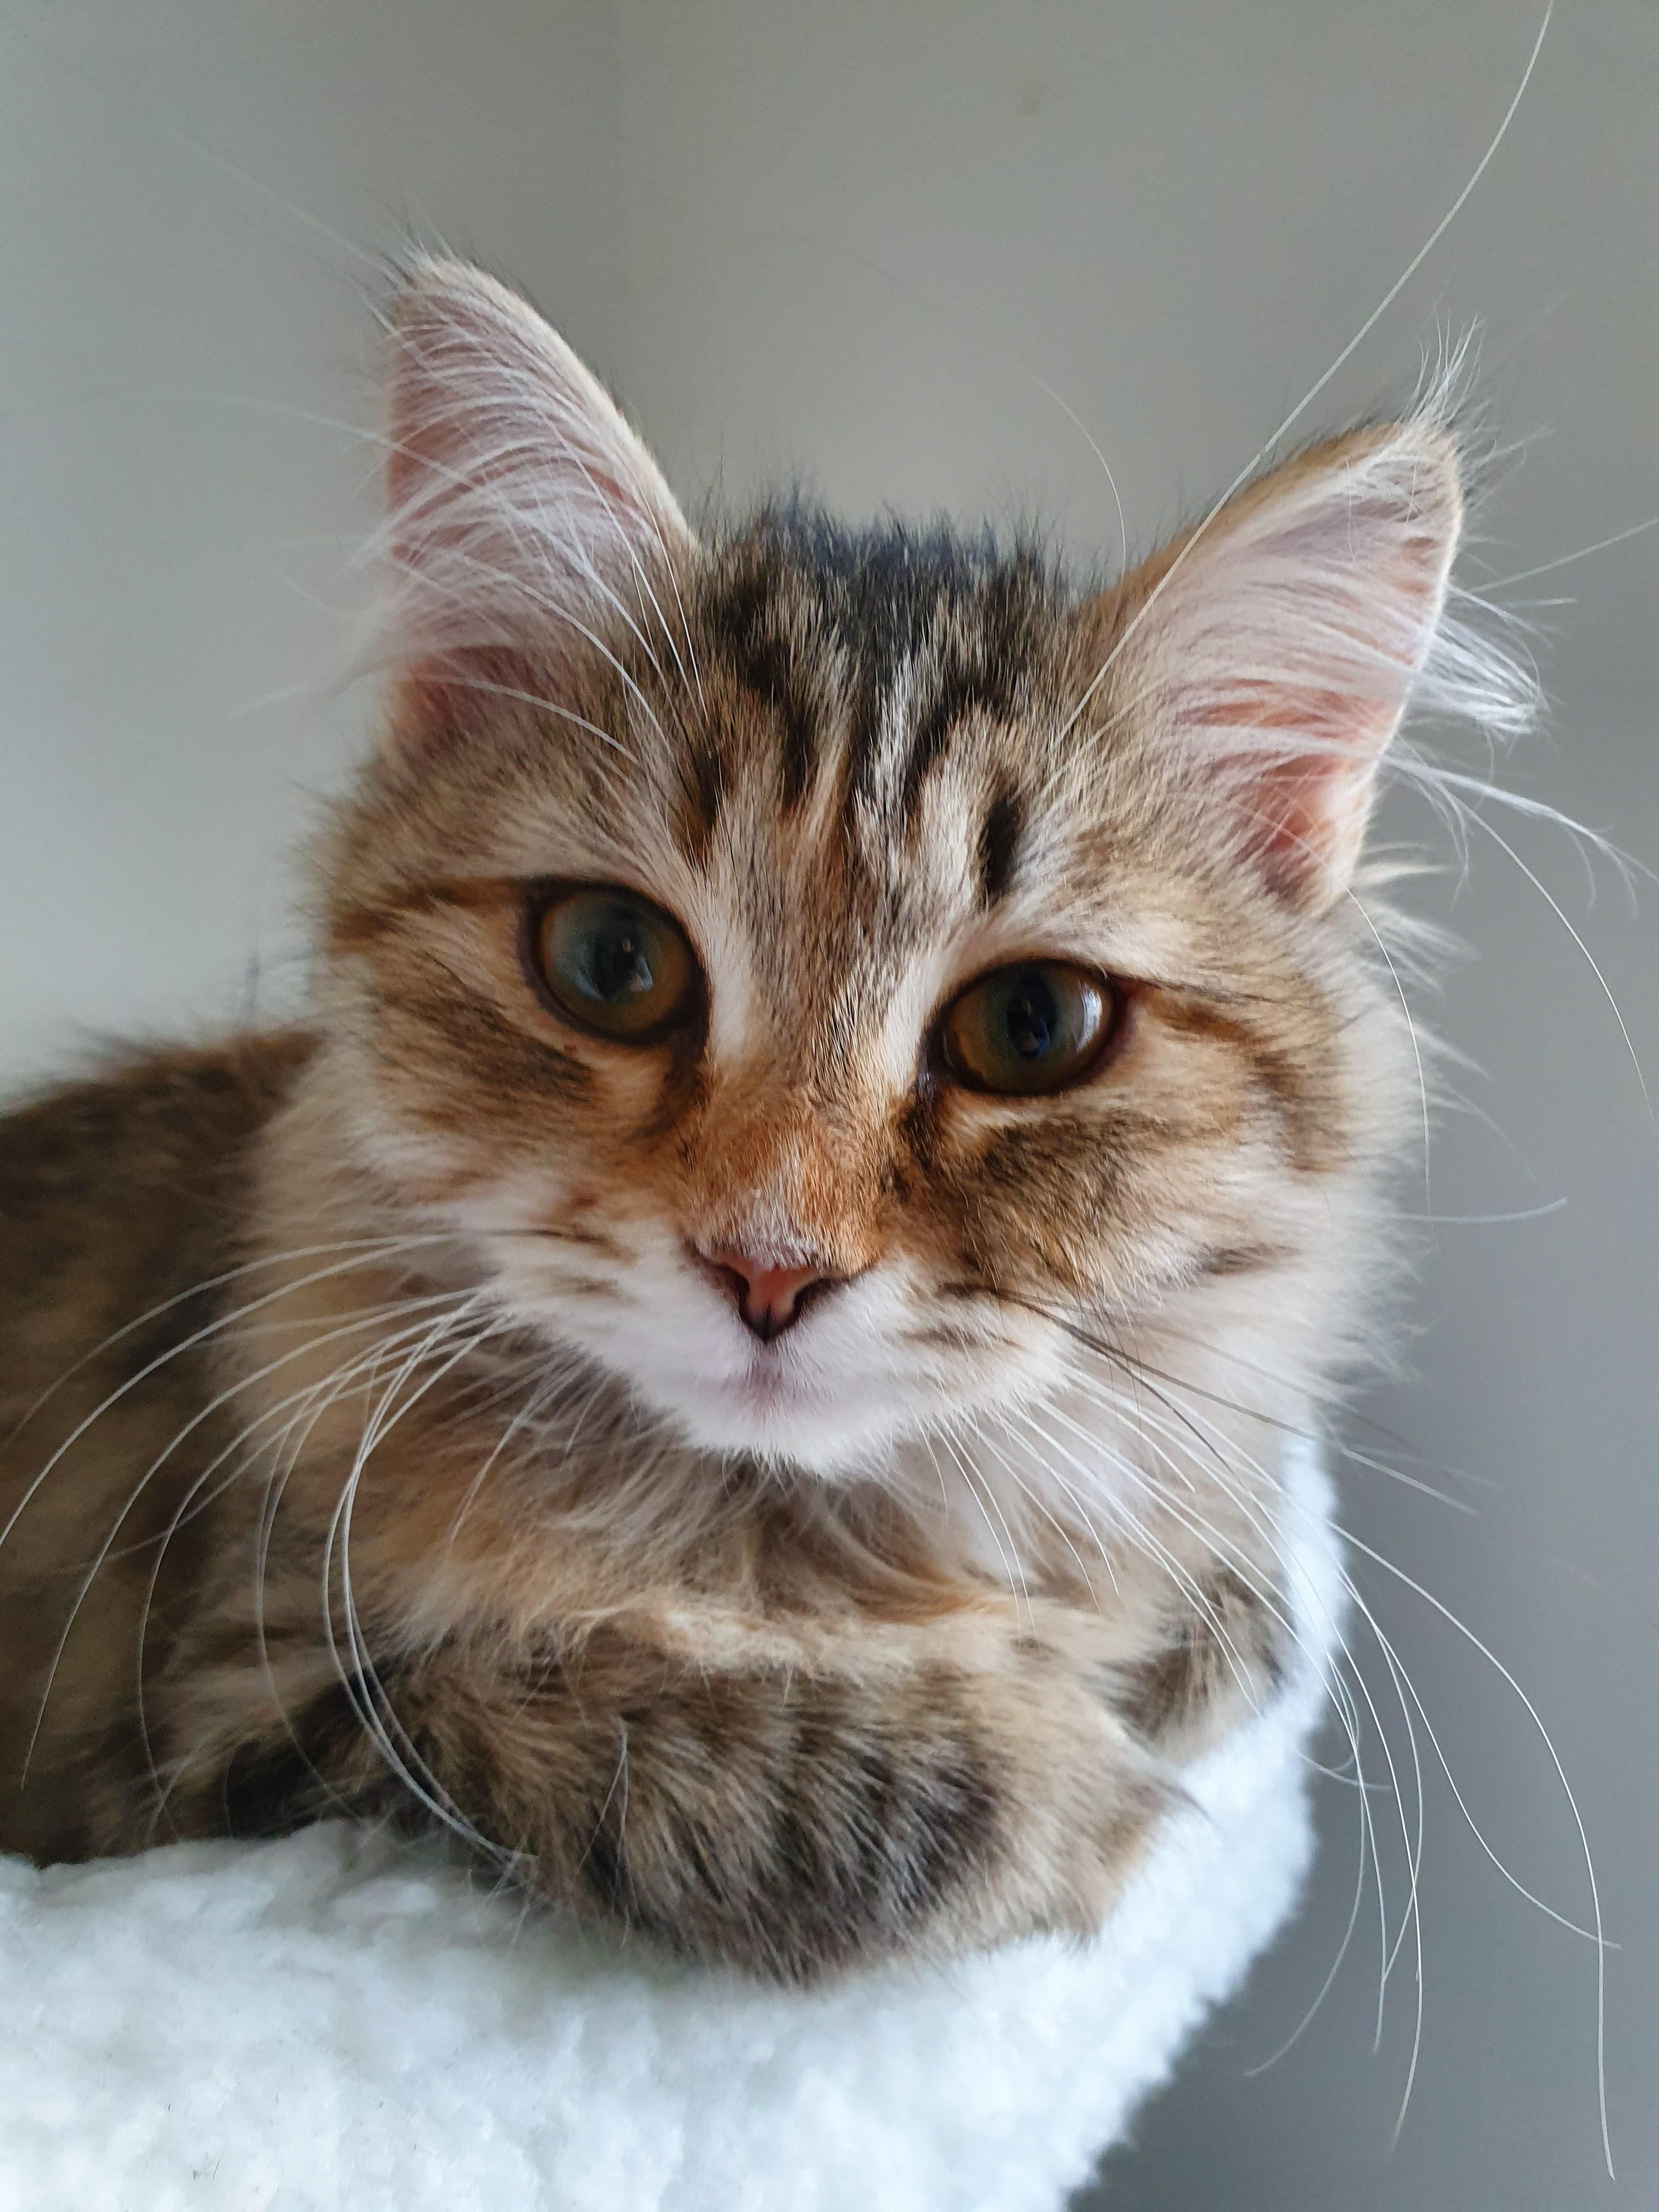 Say Hello To Kiara She S A Wise Little Kitten Who Loves To Cuddle And Starts Purring When You Look At Herht In 2020 Little Kittens Dog Cat Pictures Cute Animal Videos